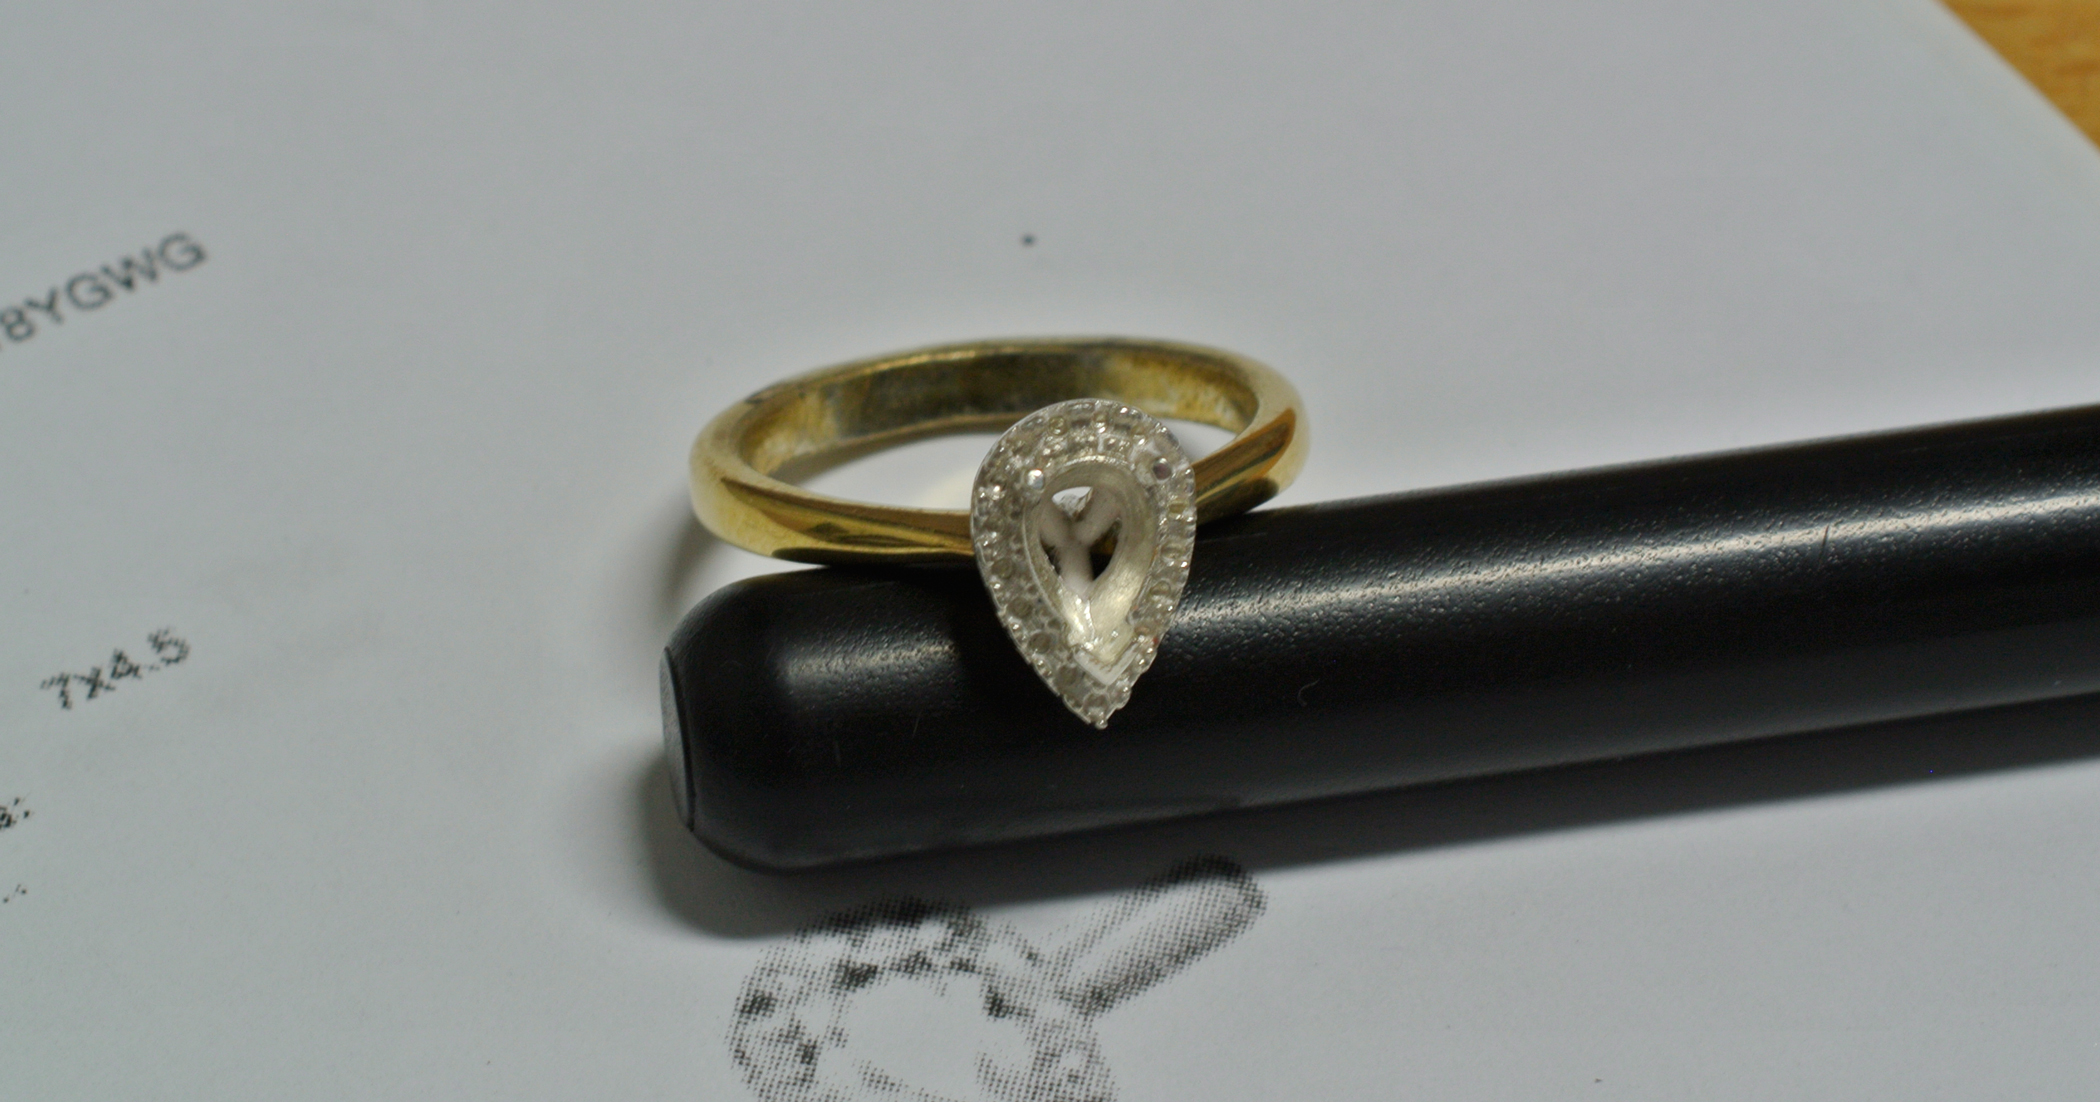 The draft ring made in Sterling Silver with the band gold plated.